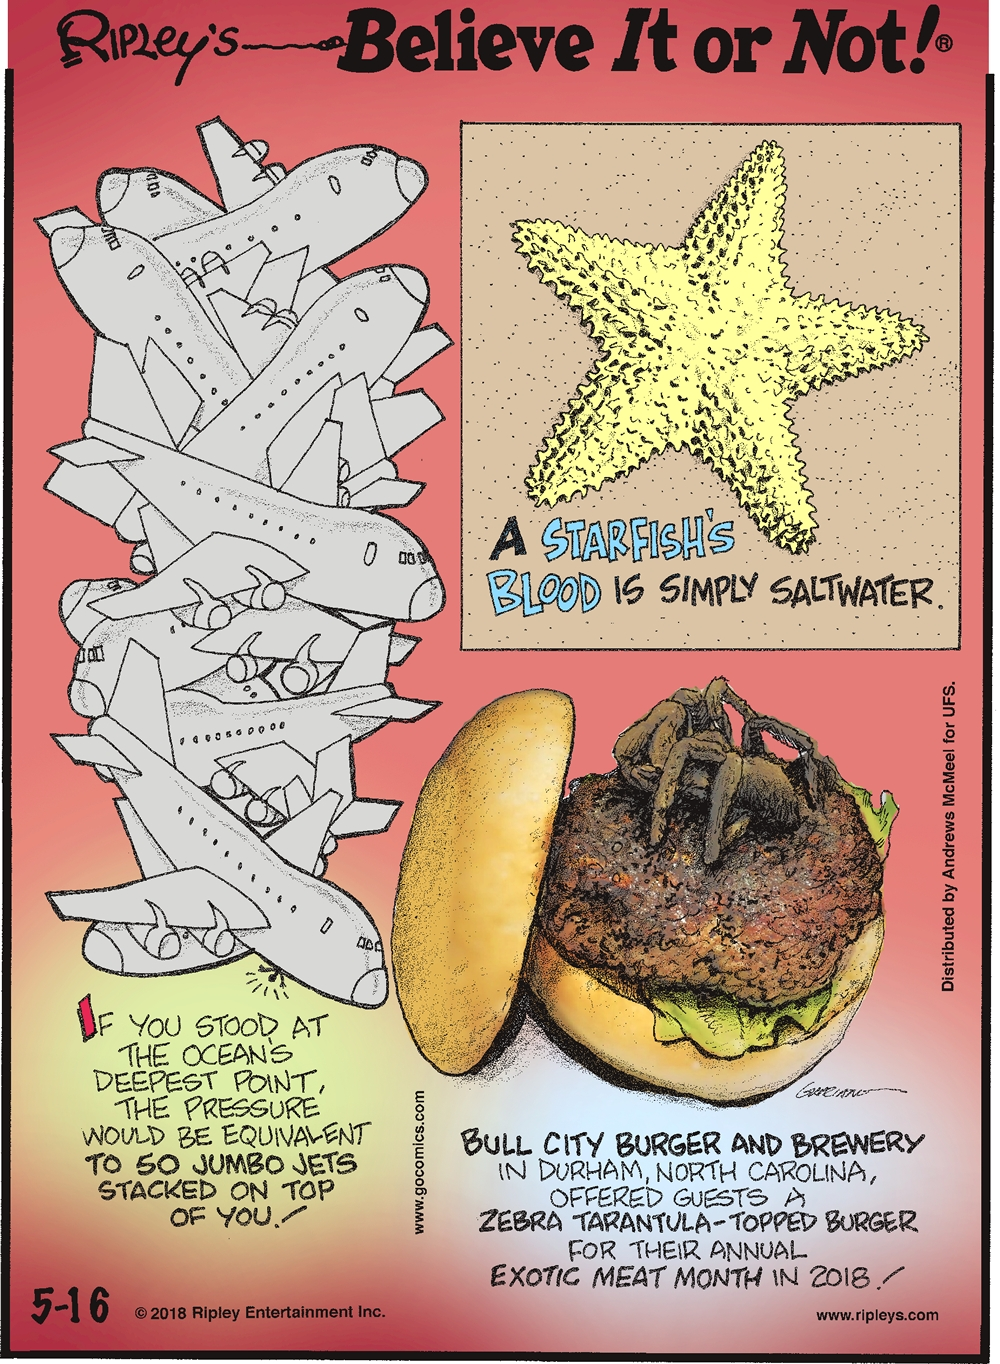 If you stood at the ocean's deepest point, the pressure would be equivalent to 50 jumbo jets stacked on top of you!-------------------- A starfish's blood is simply saltwater.-------------------- Bull City Burger and Brewery in Durham, North Carolina, offered guests a zebra tarantula-topped burger for their annual exotic meat month in 2018!